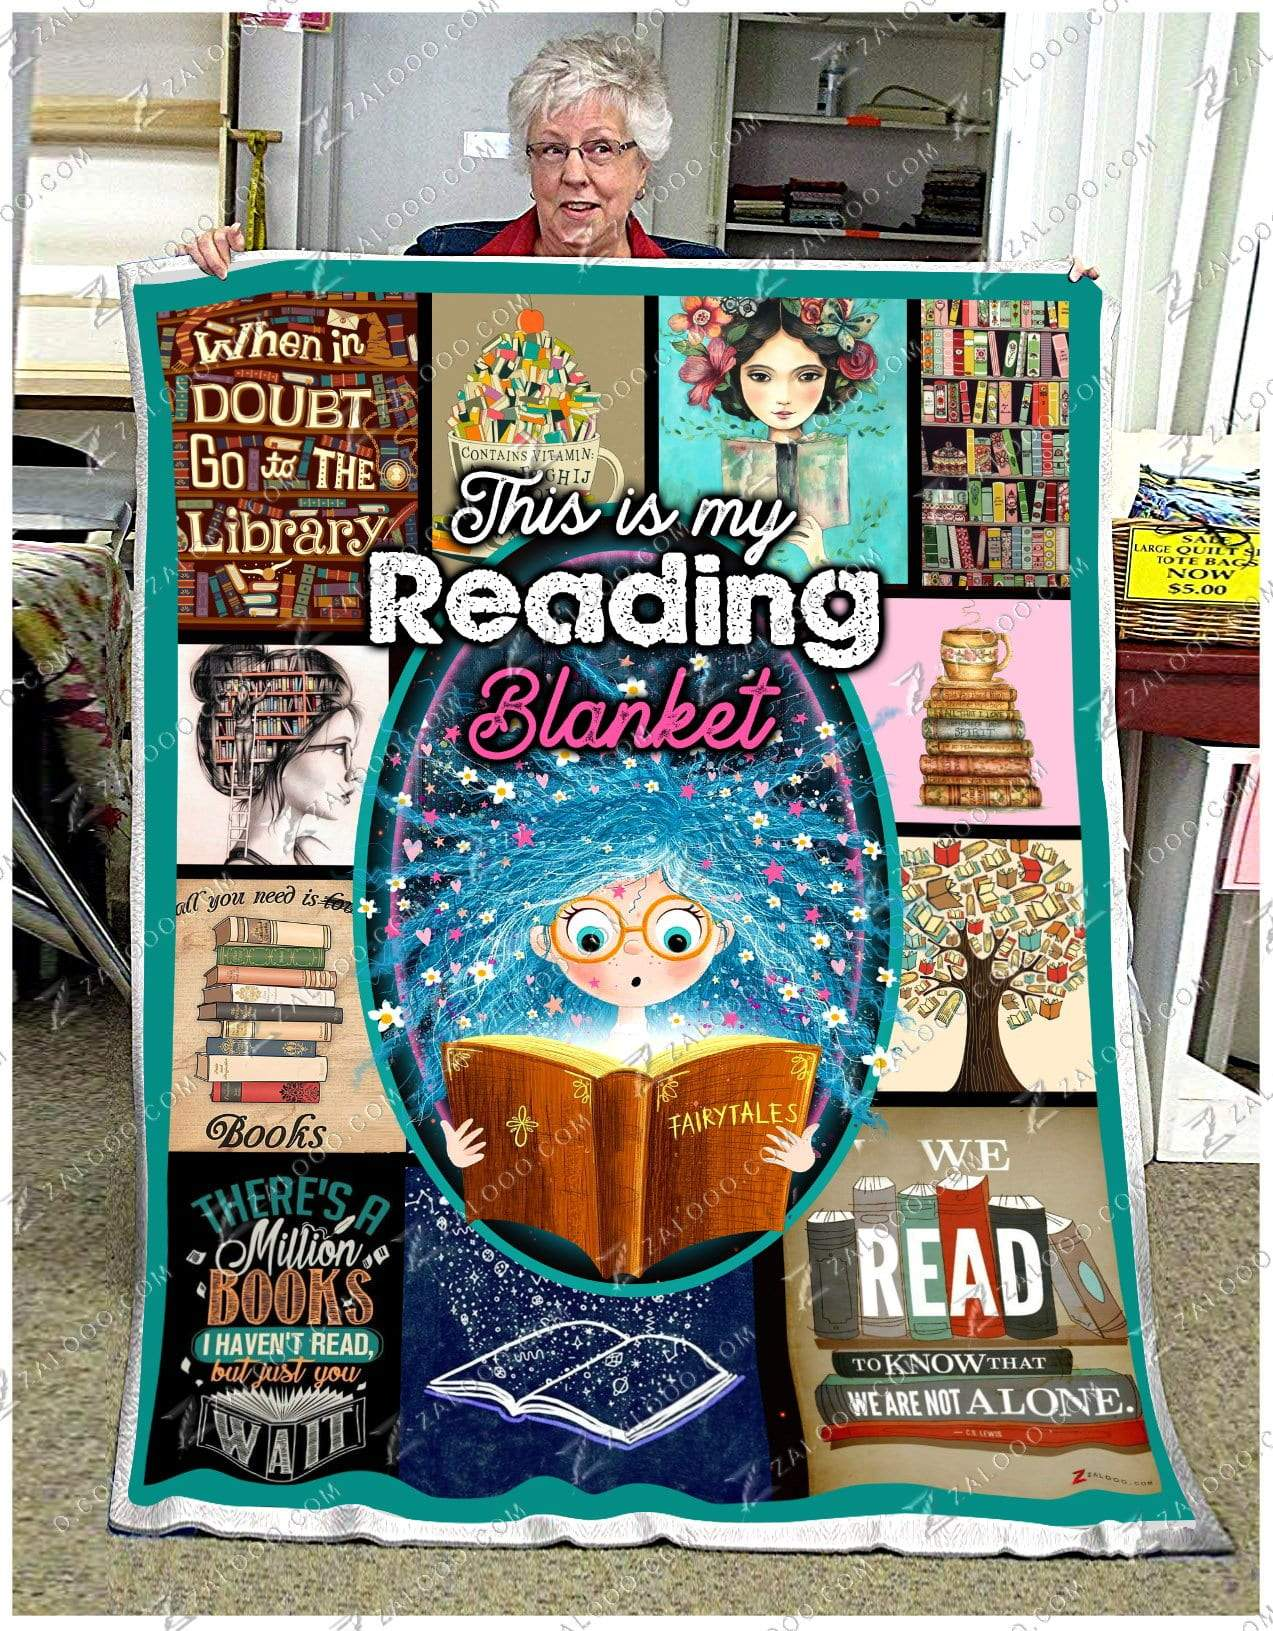 READ - This is my Reading Quilt Blanket EP2296